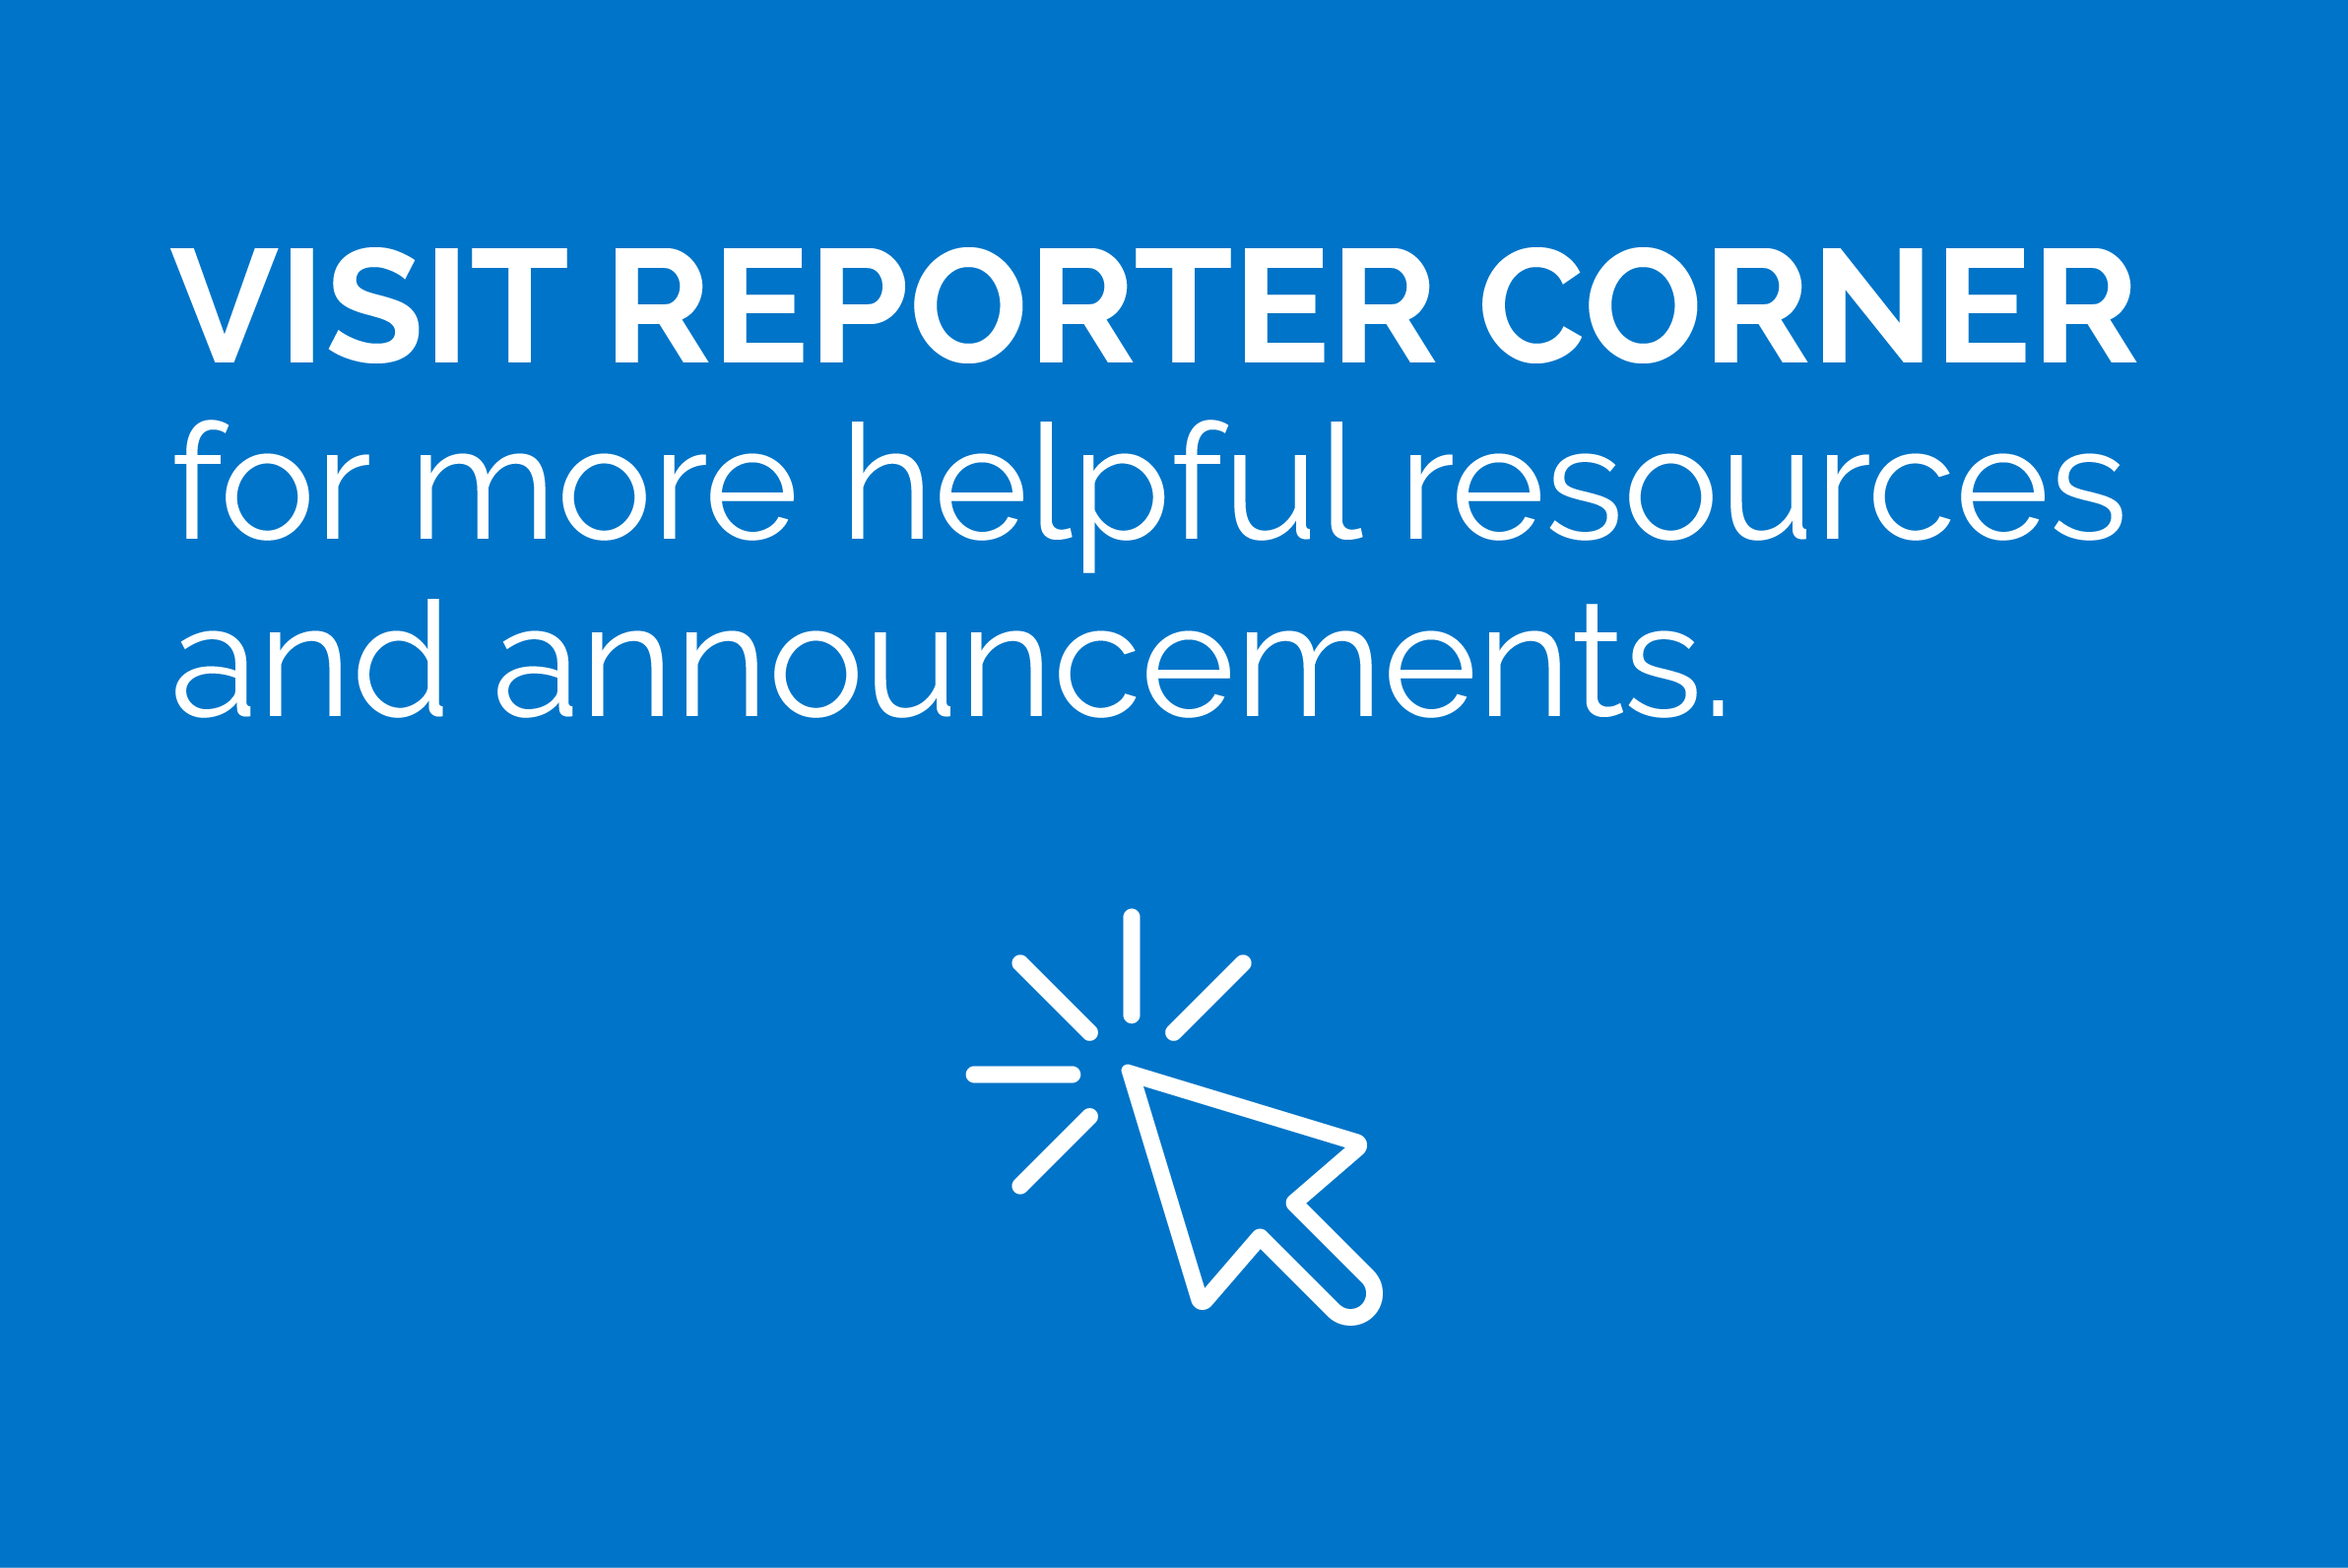 Visit the Reporter Corner for more helpful resources